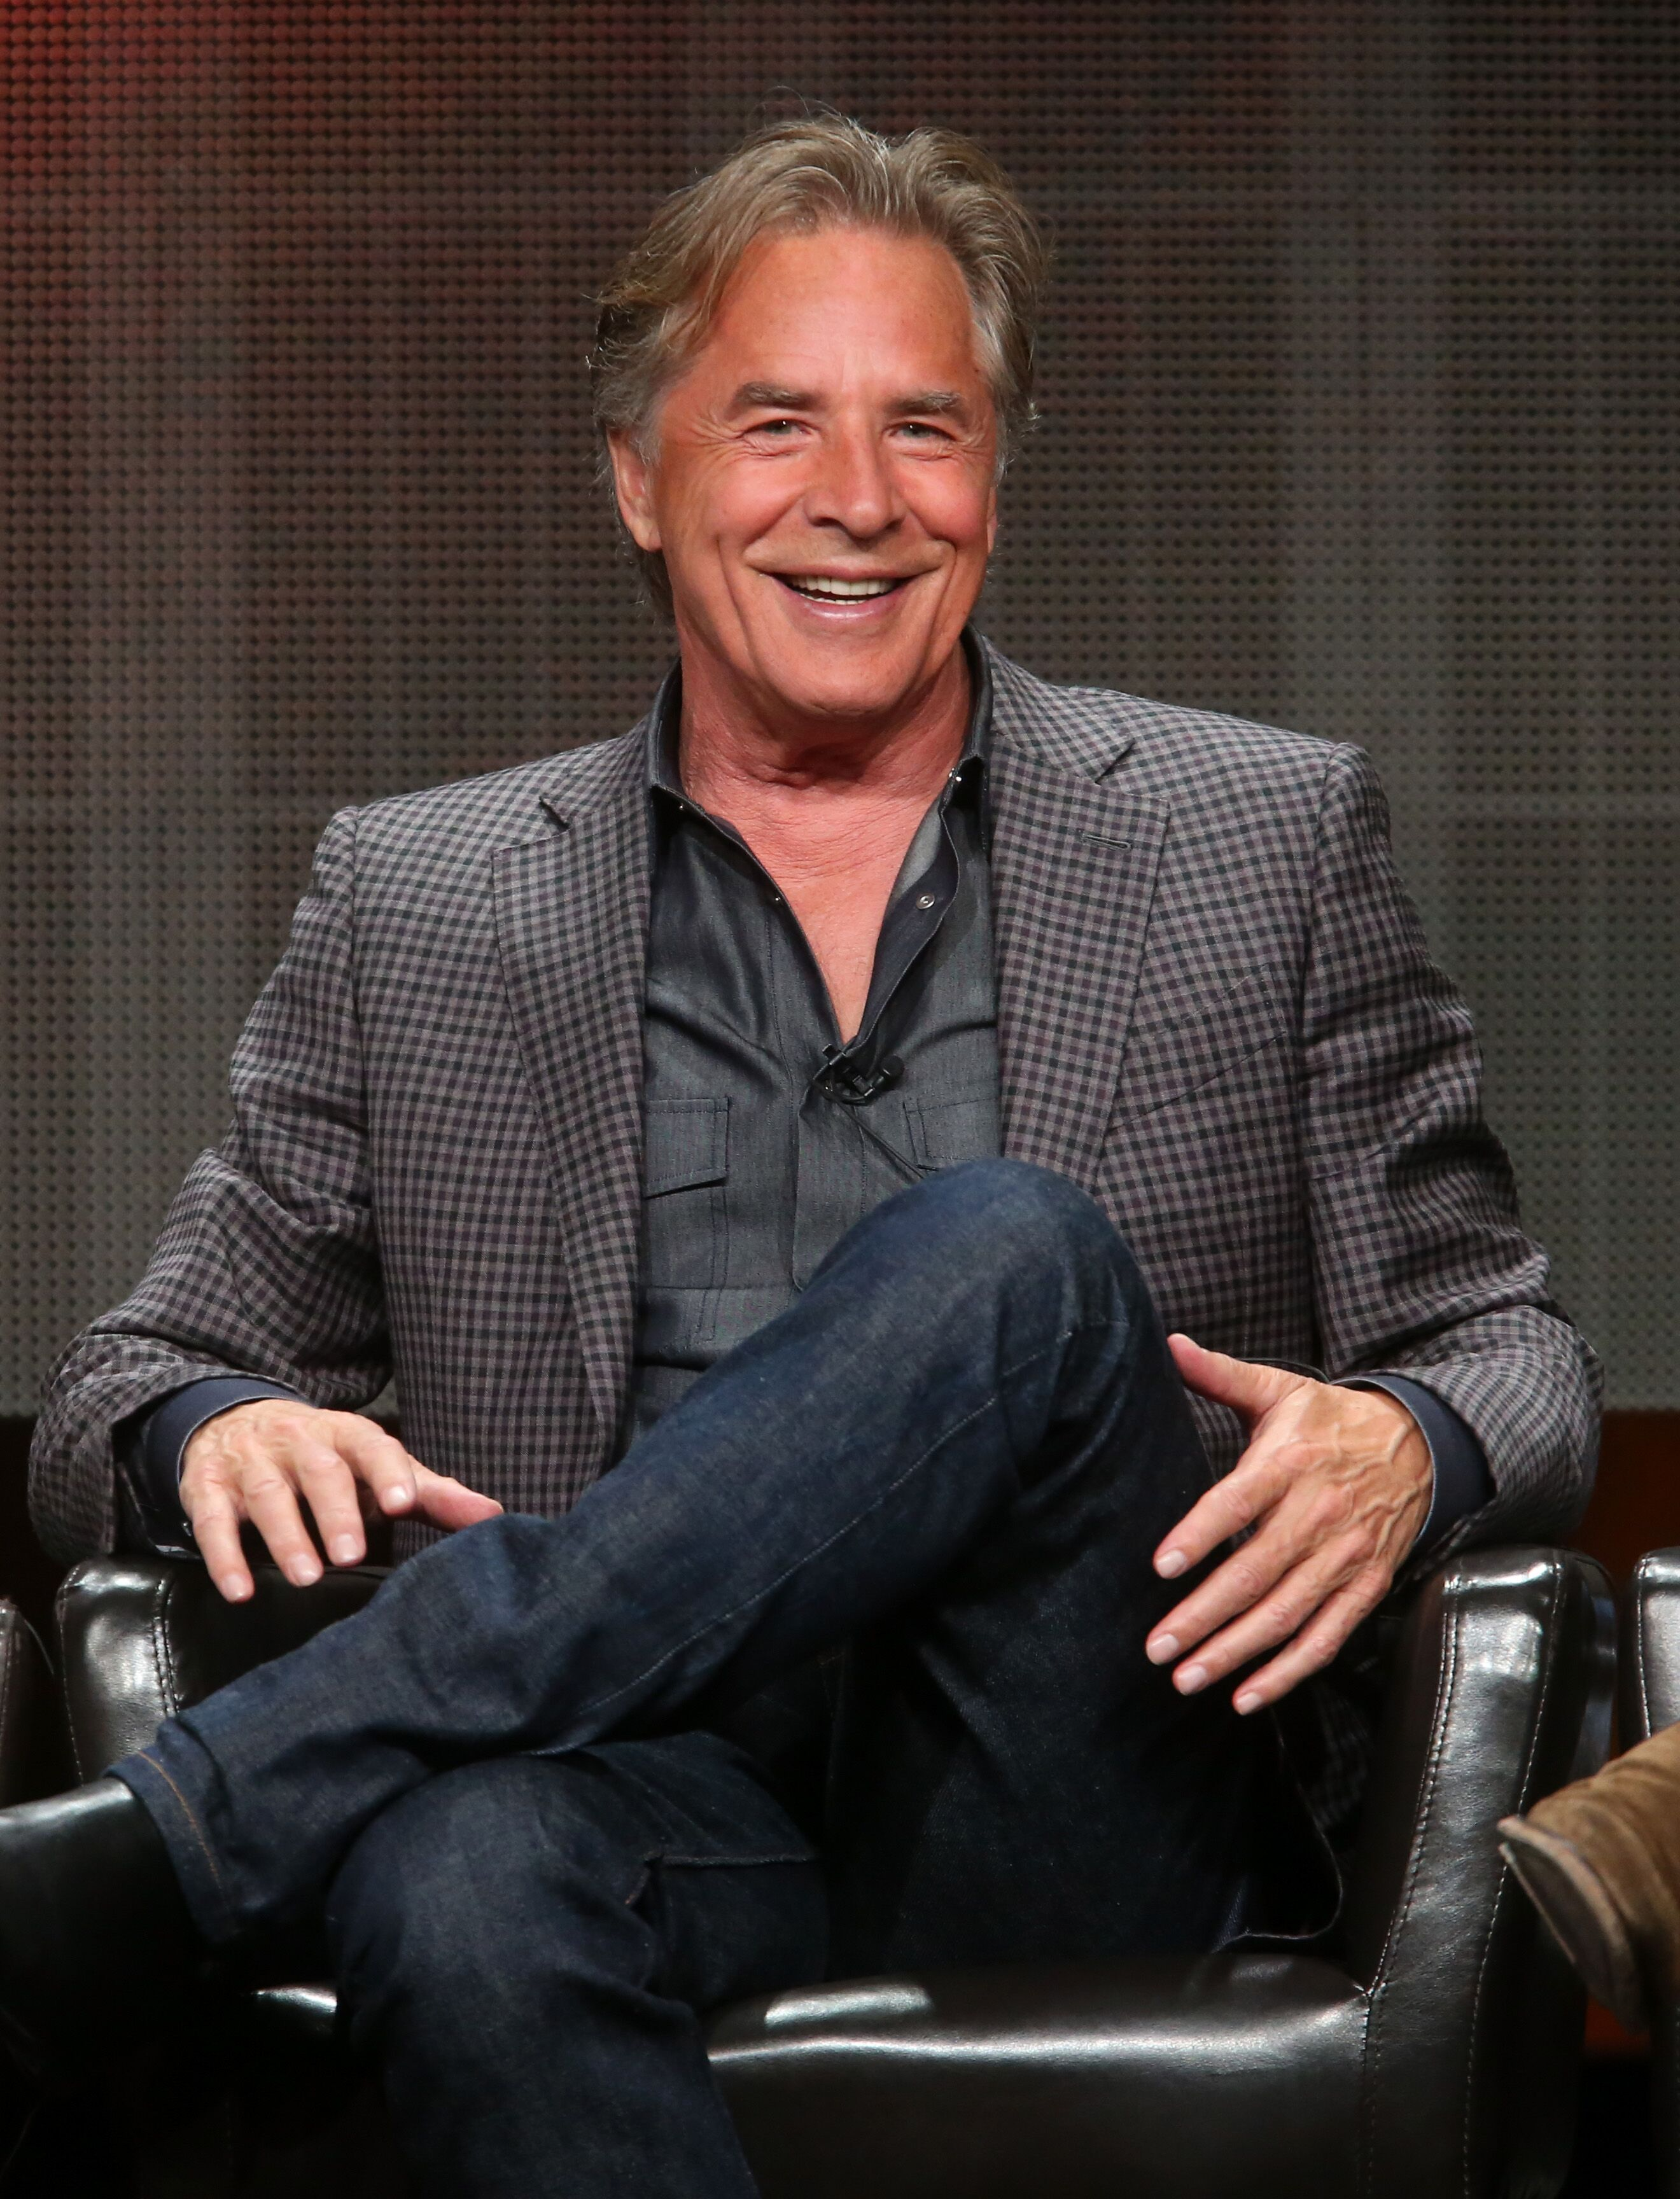 Actor Don Johnson speaks onstage during the 'Blood & Oil' panel discussion at the ABC Entertainment portion of the 2015 Summer TCA Tour | Getty Images